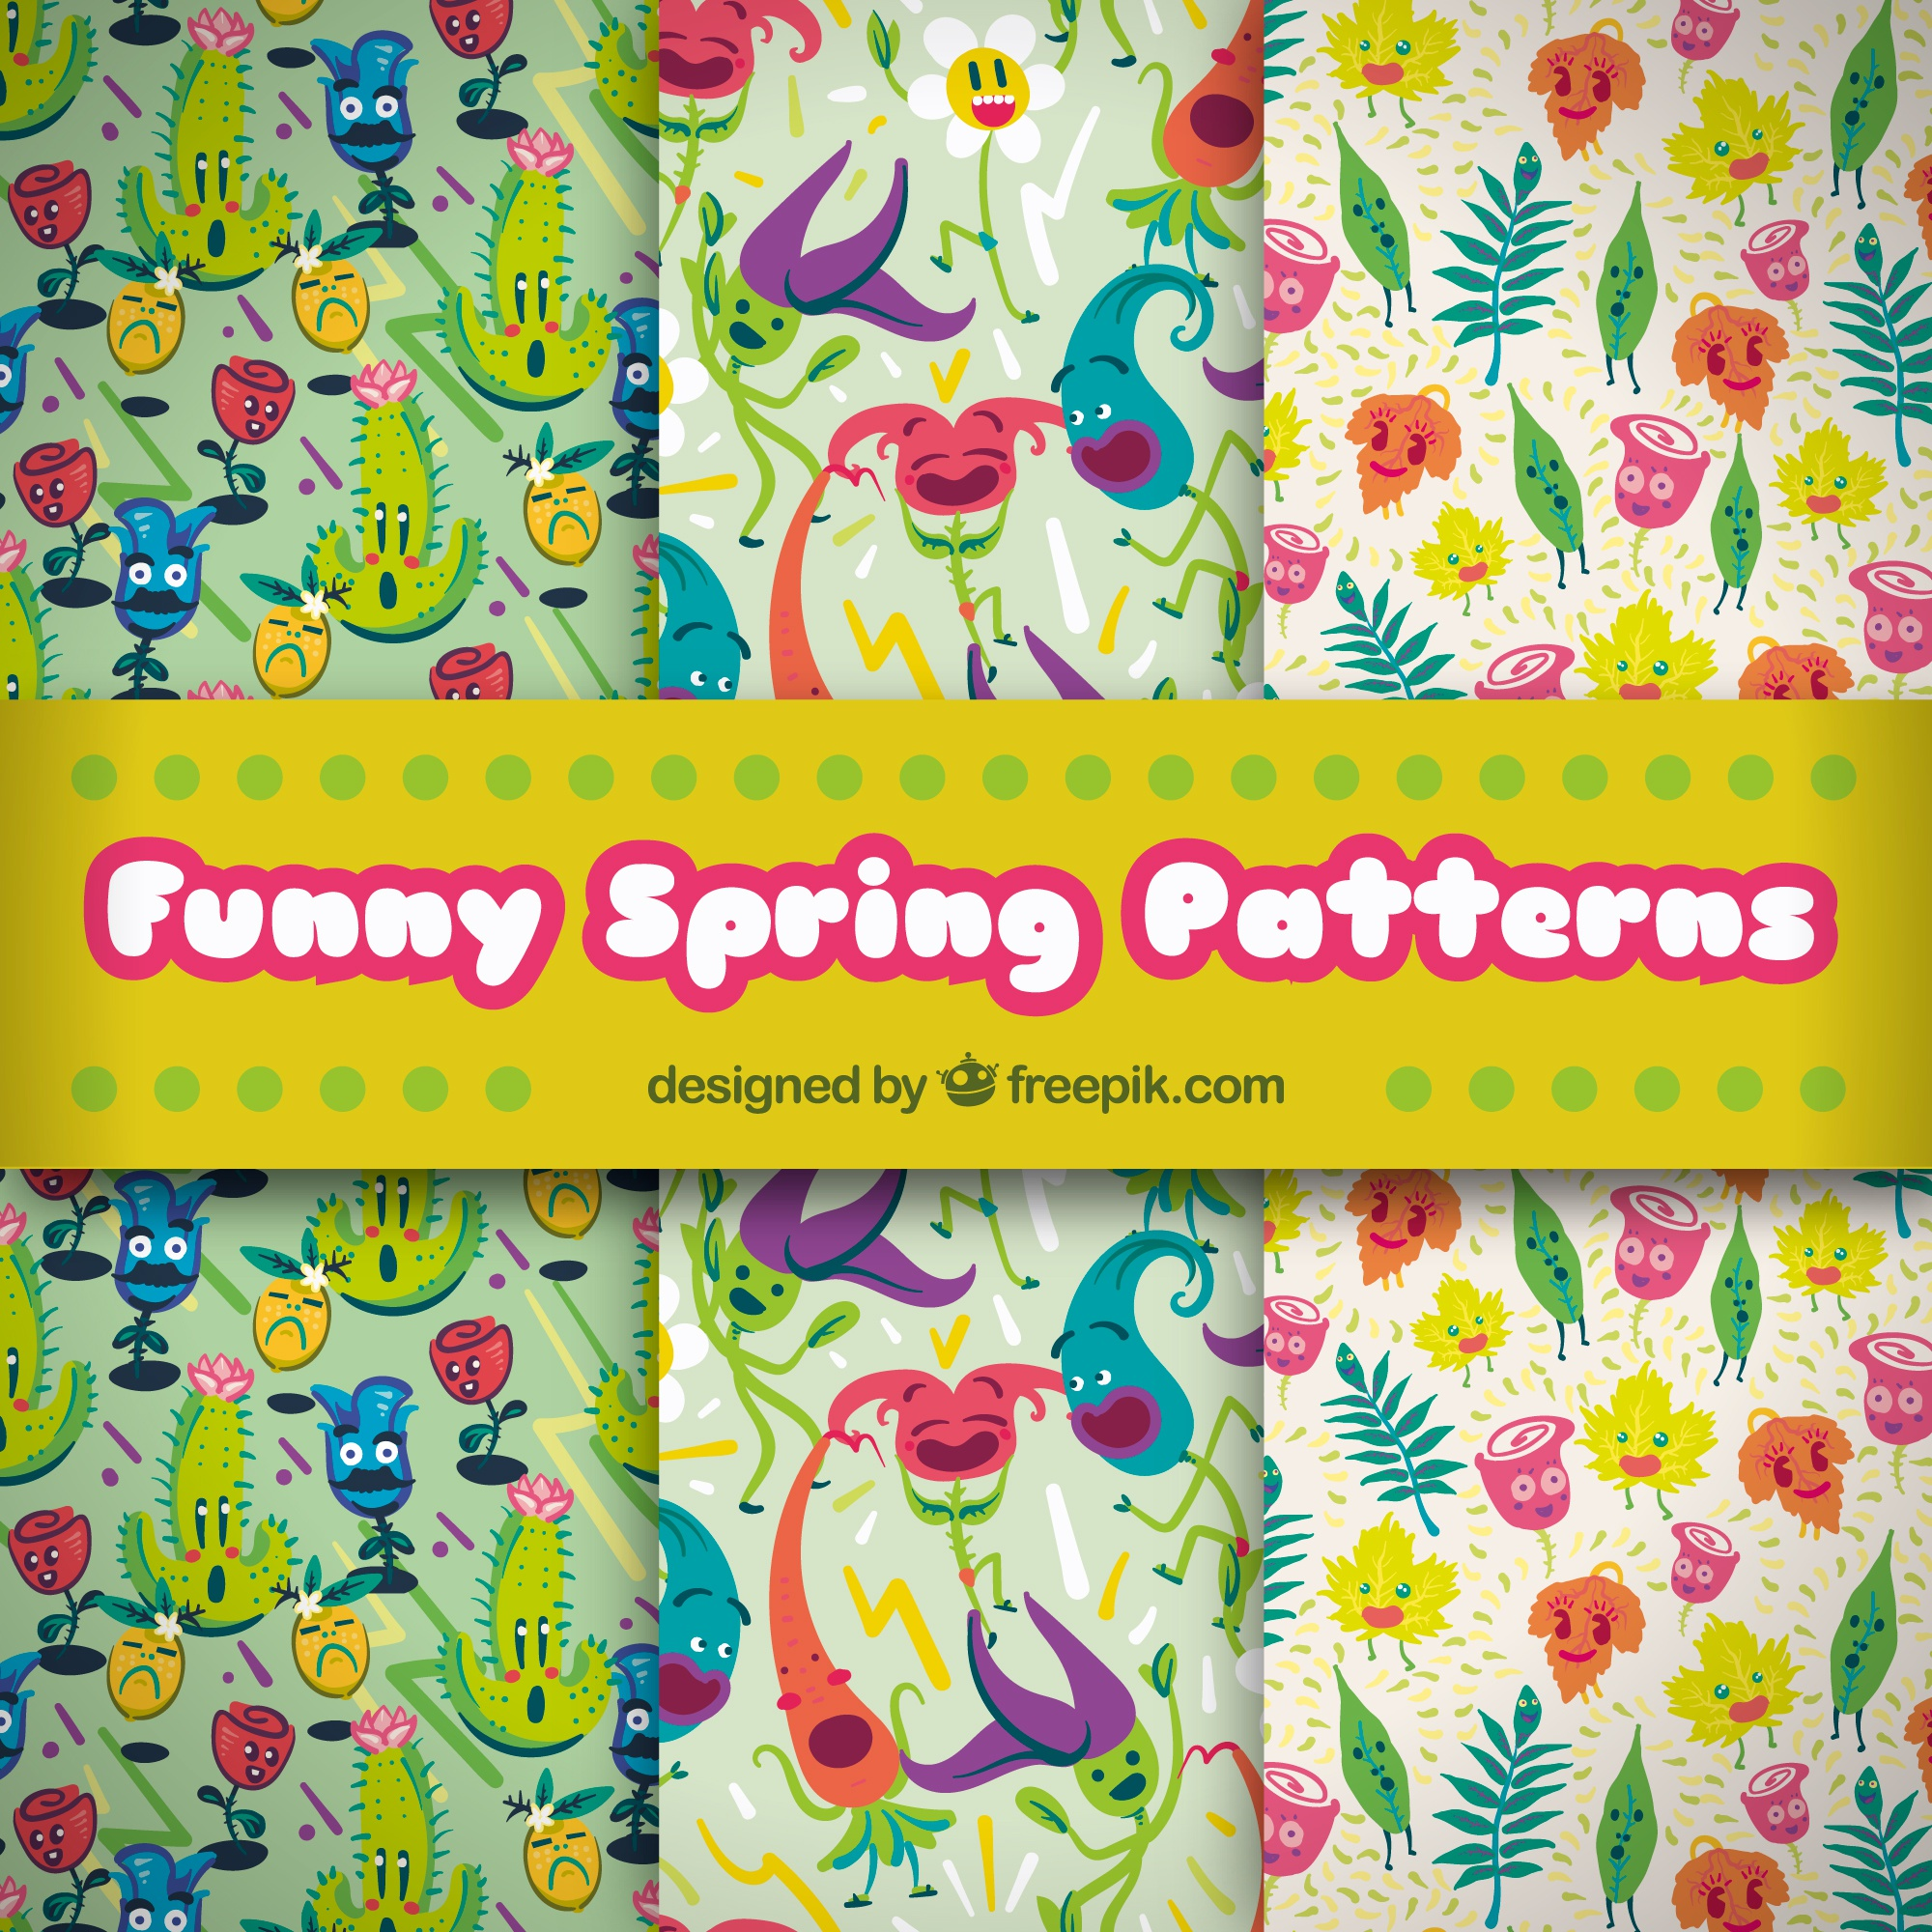 Great patterns with funny characters for spring